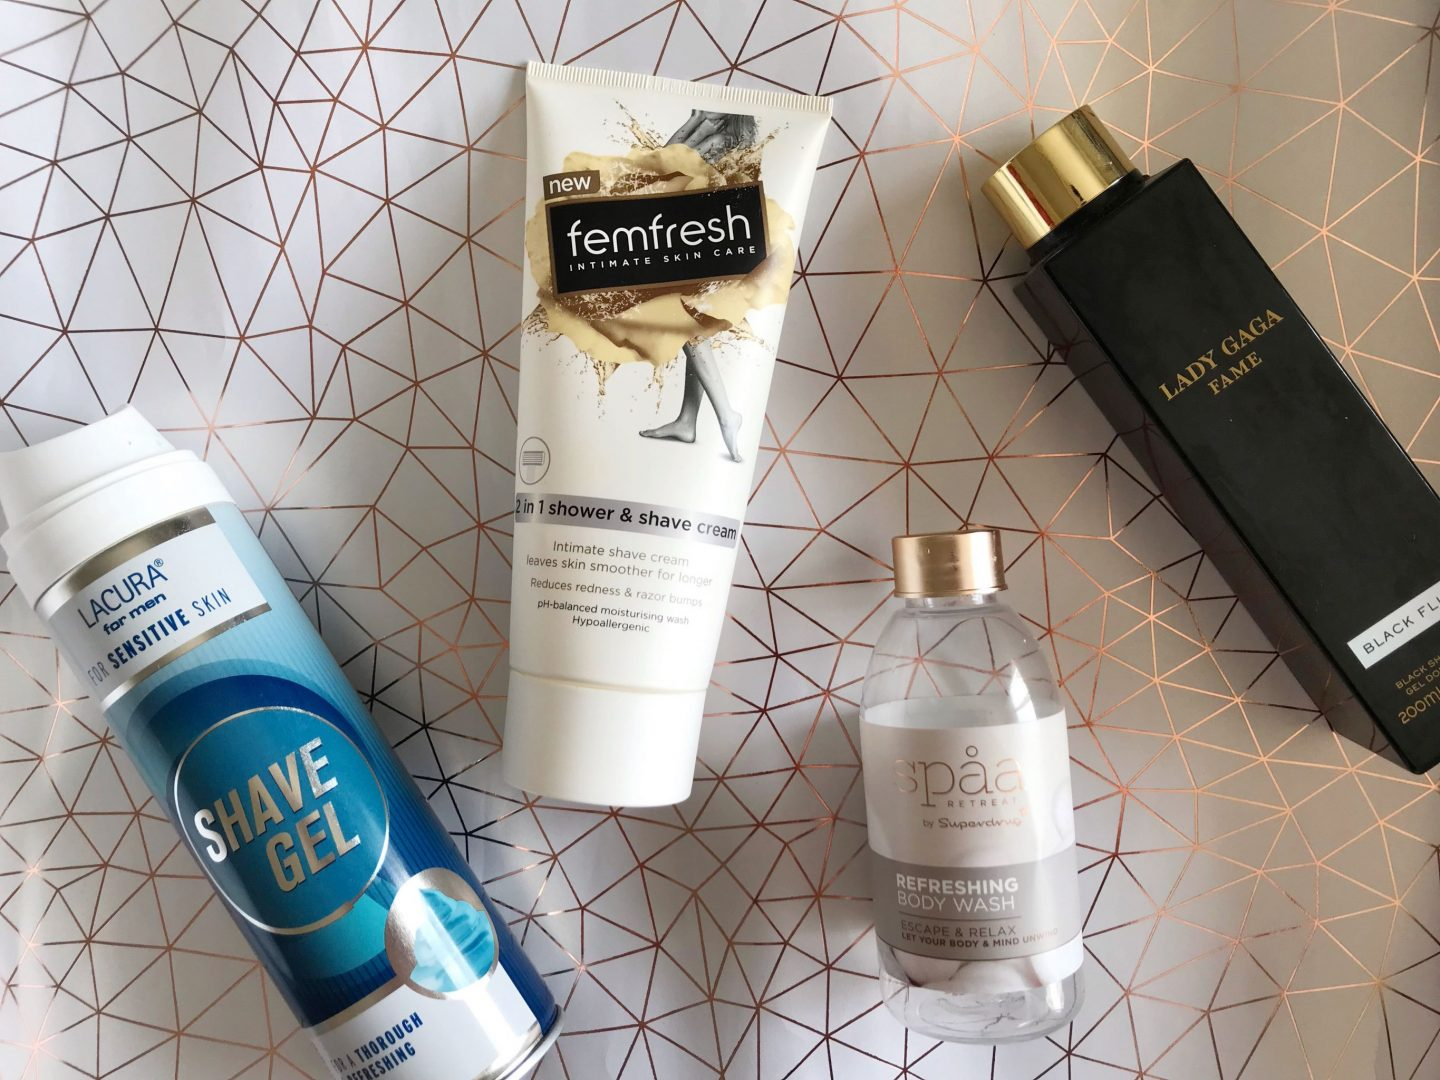 product empties (shower and body) flat-lay